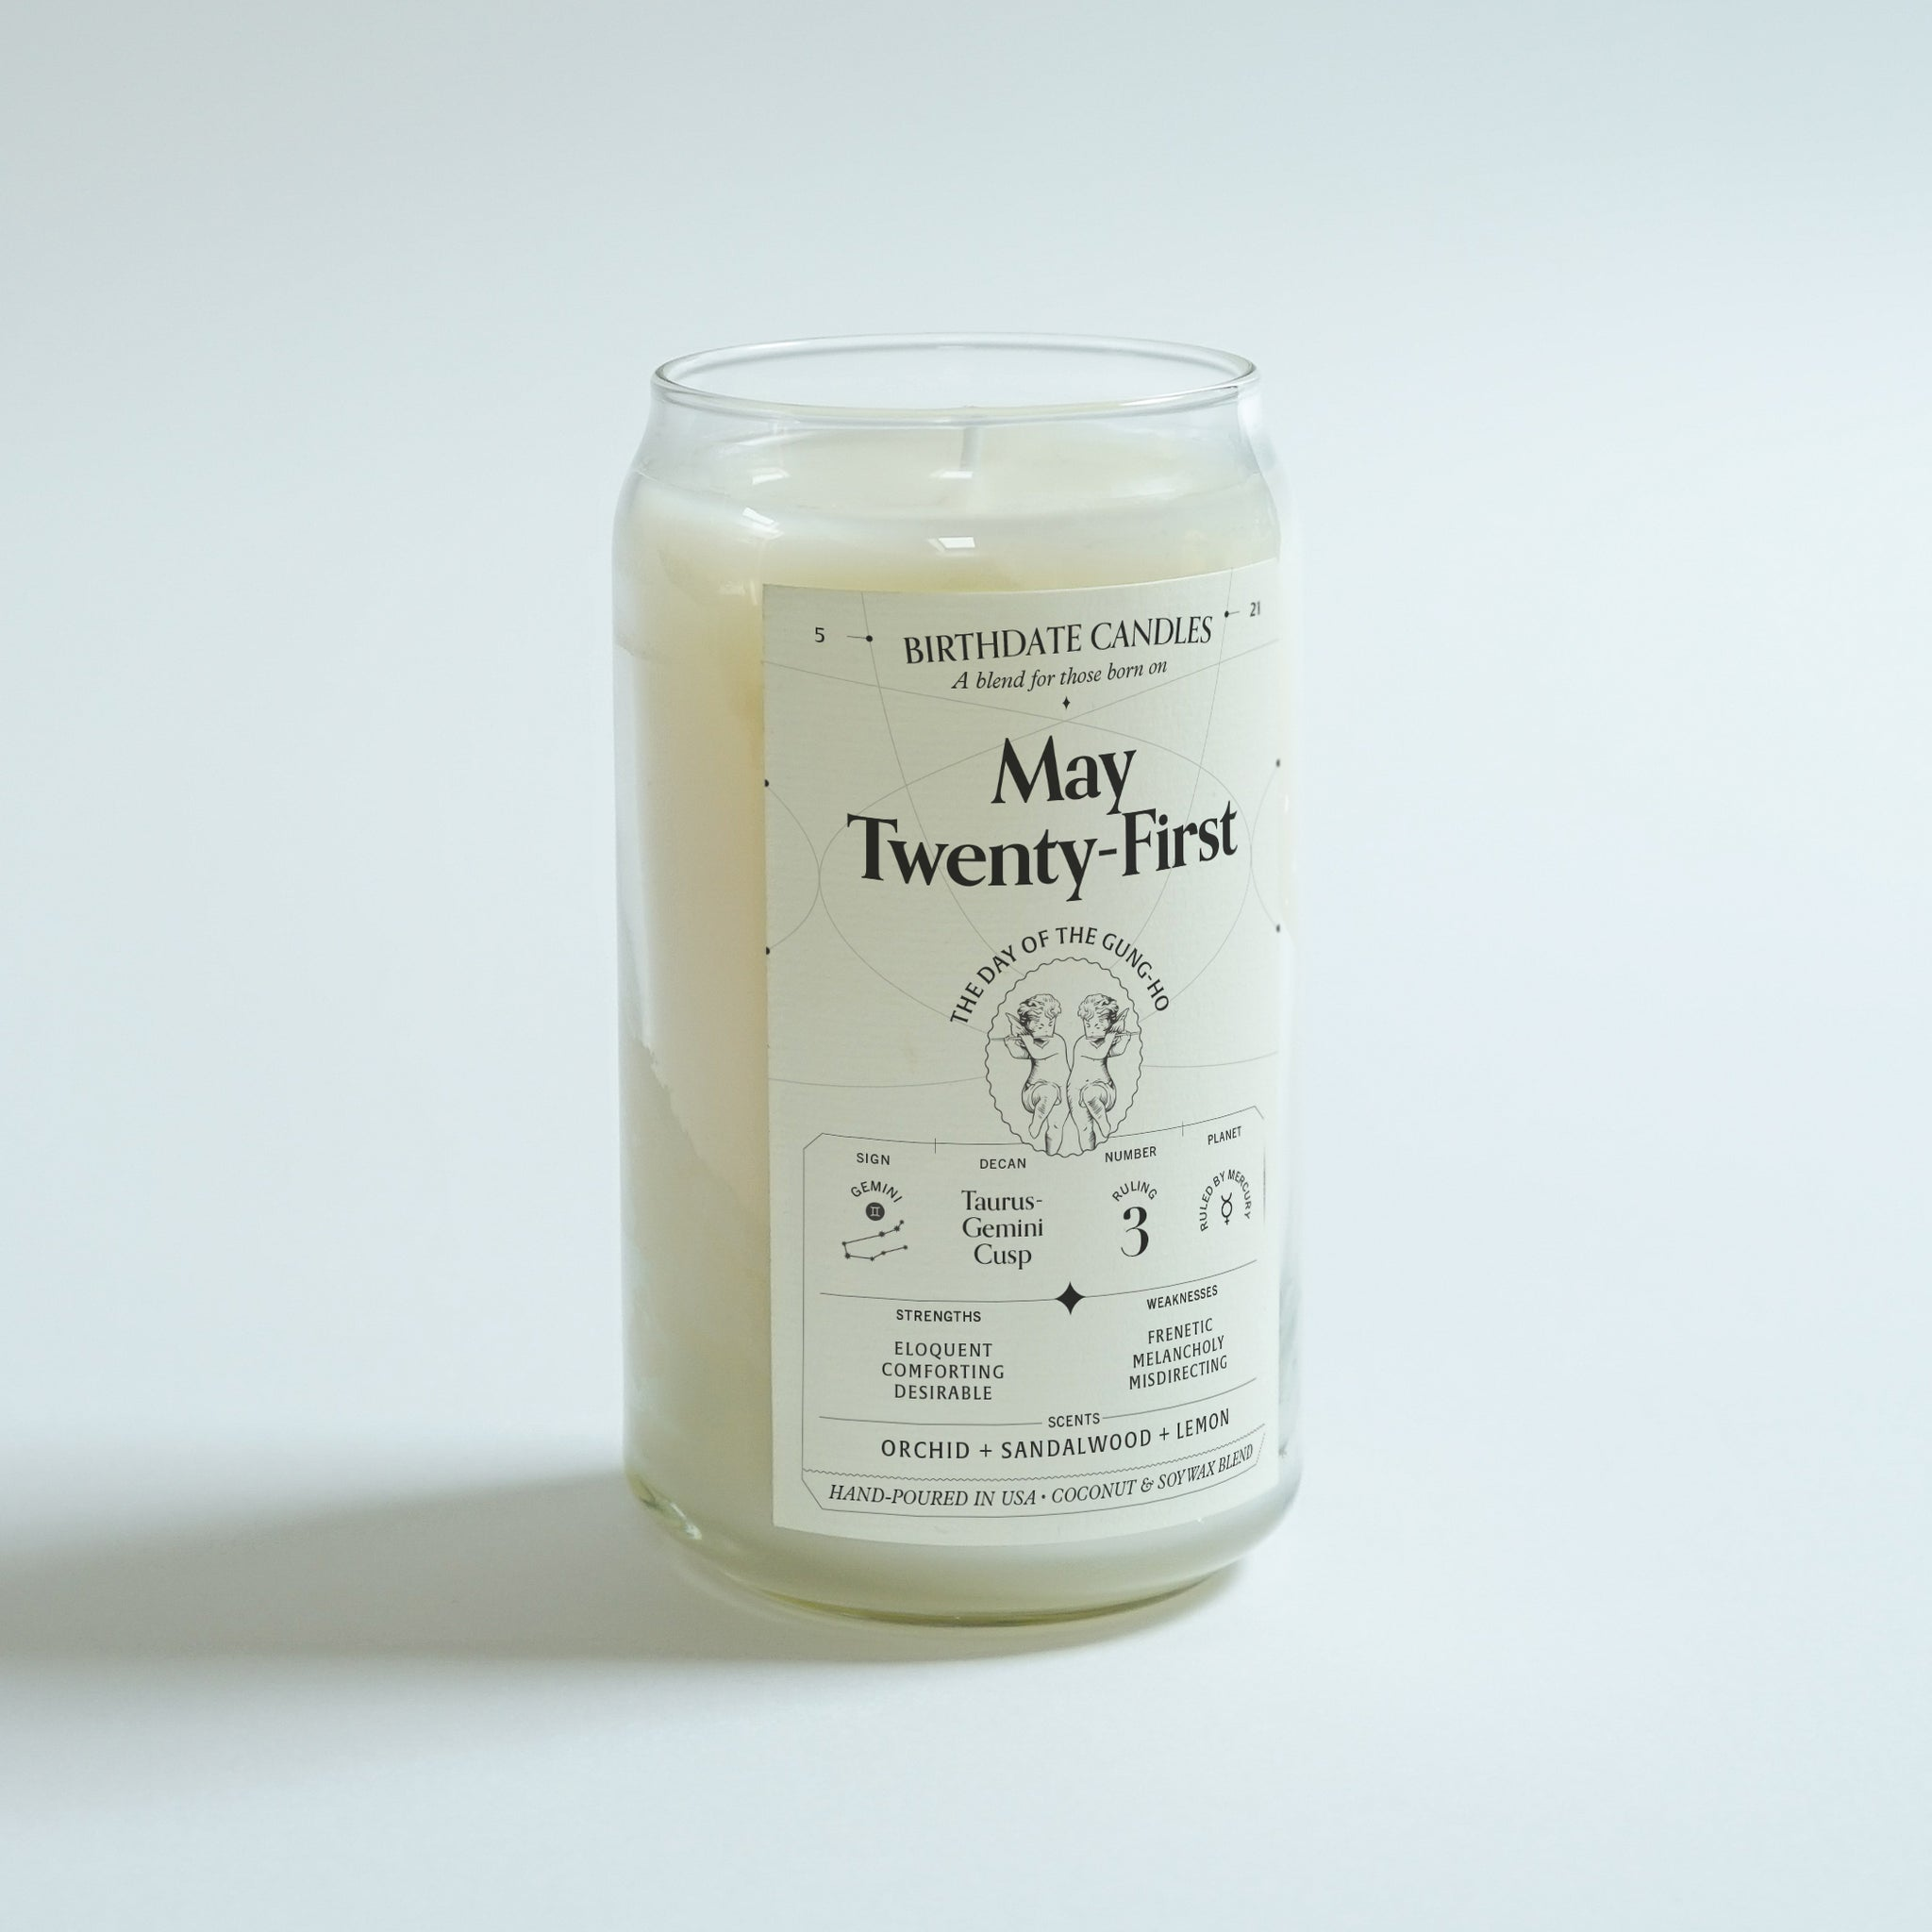 The May Twenty-First Birthday Candle